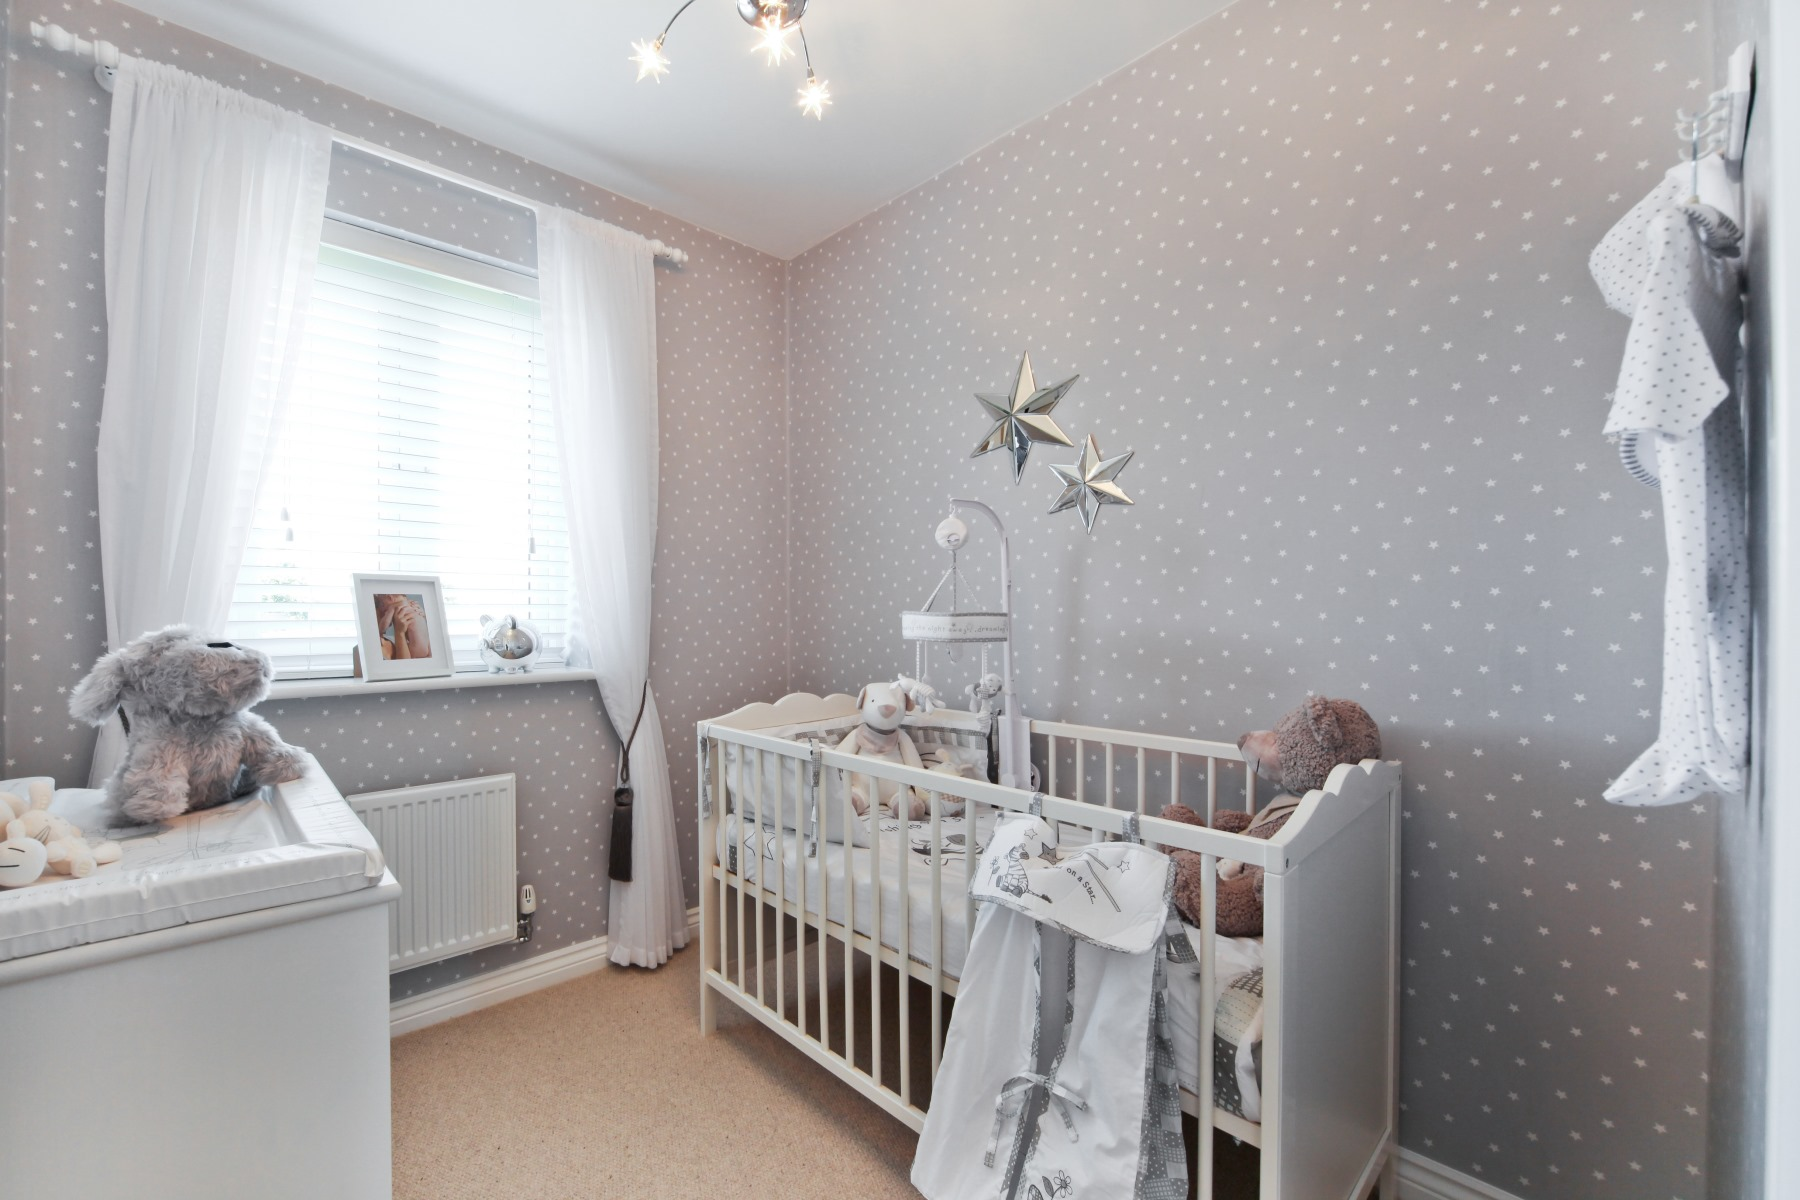 Knutsford Nursery Bedroom 3 - Nightingale Gardens